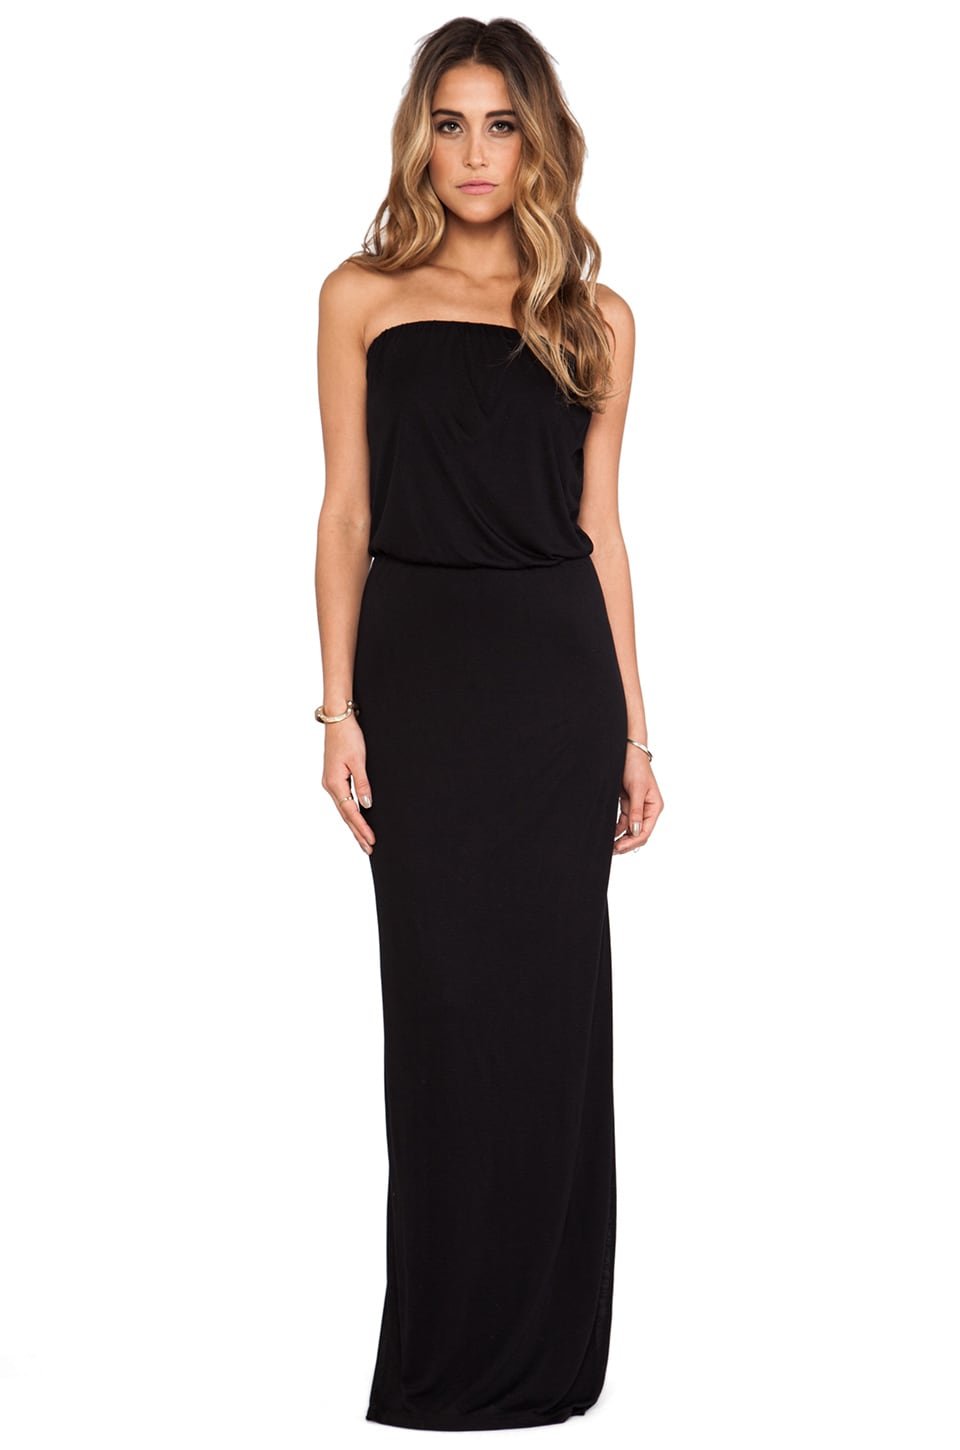 Velvet by Graham & Spencer Tammie New Fine Slinky Dress in Black